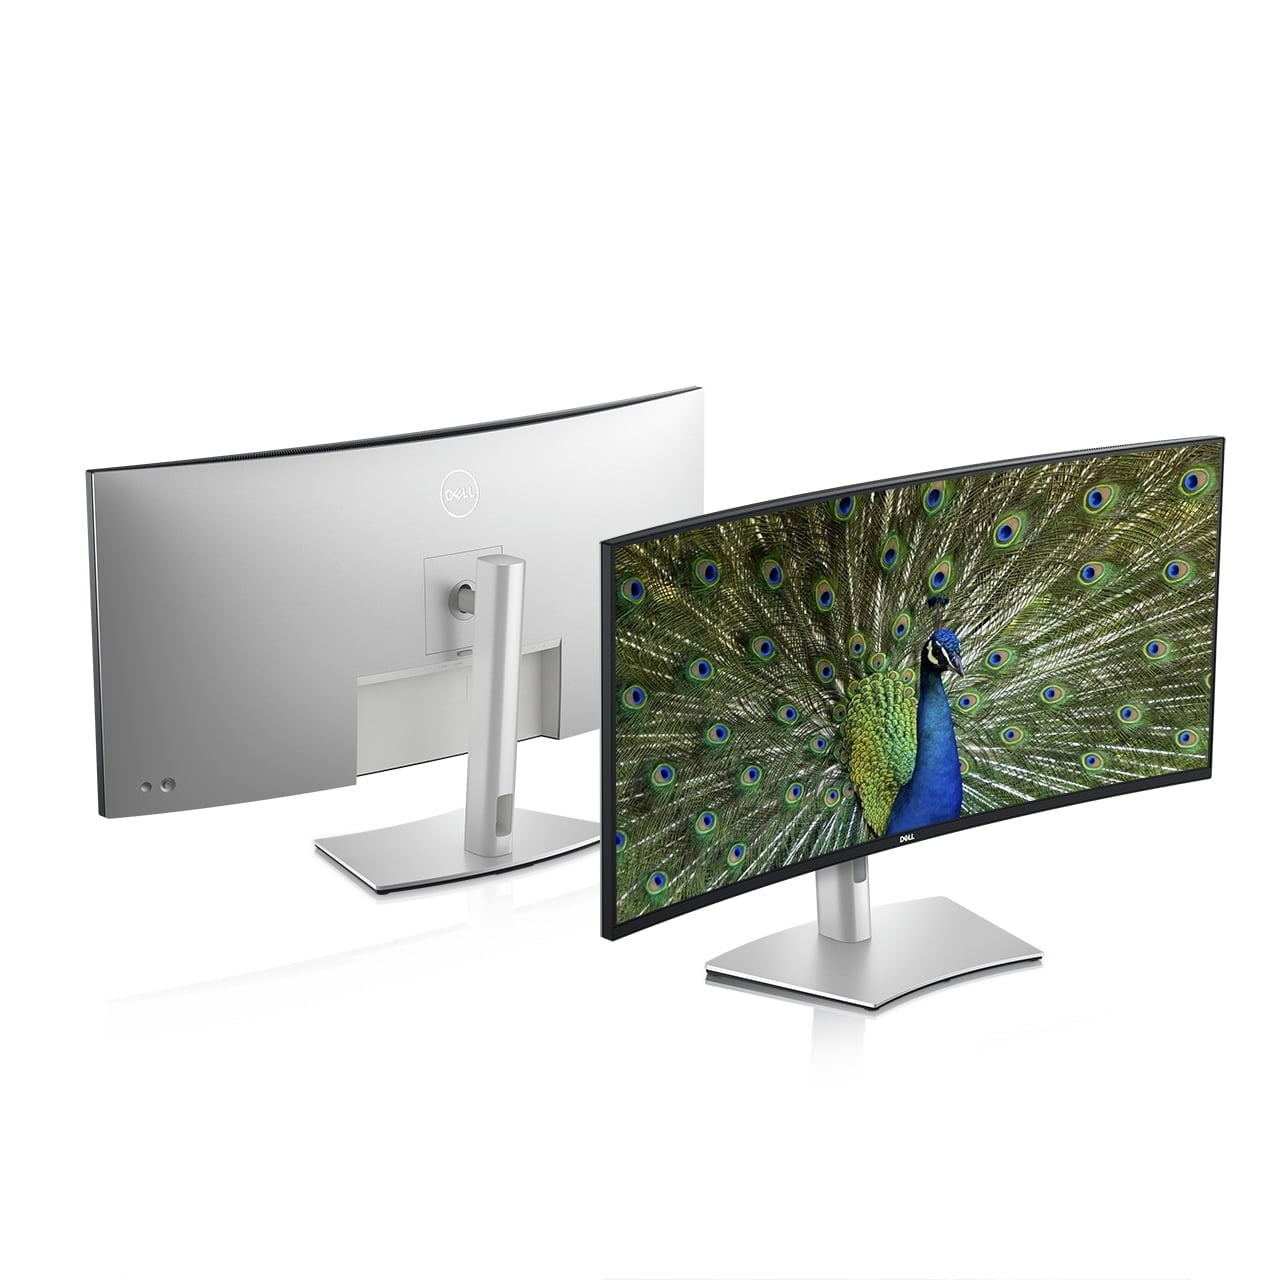 dell refreshes ultrasharp monitors ces 2021 40 curved monitor front back